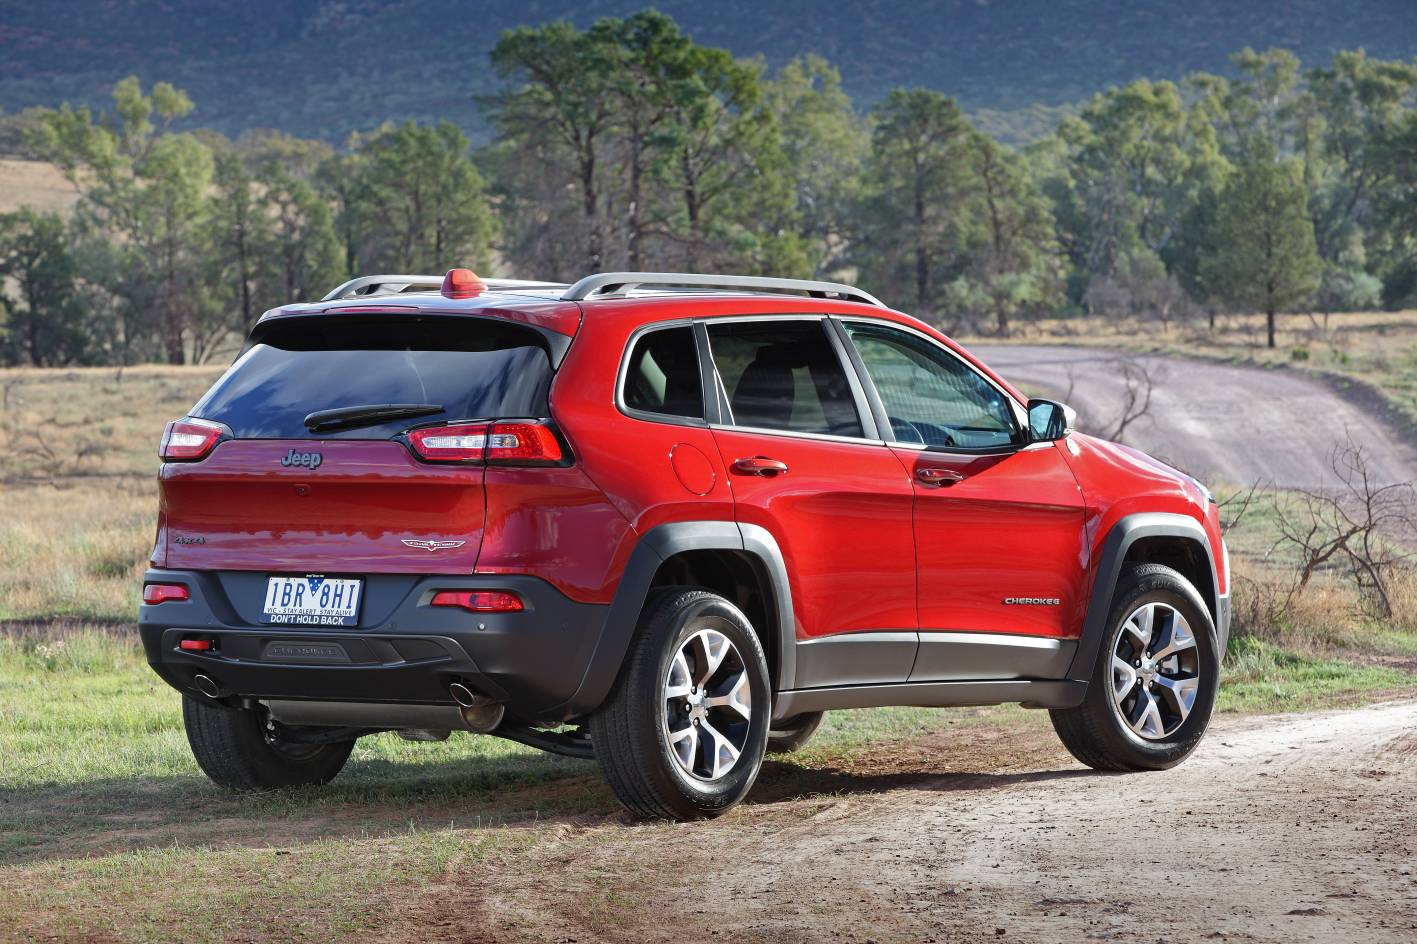 2014 jeep cherokee trailhawk rear. Black Bedroom Furniture Sets. Home Design Ideas